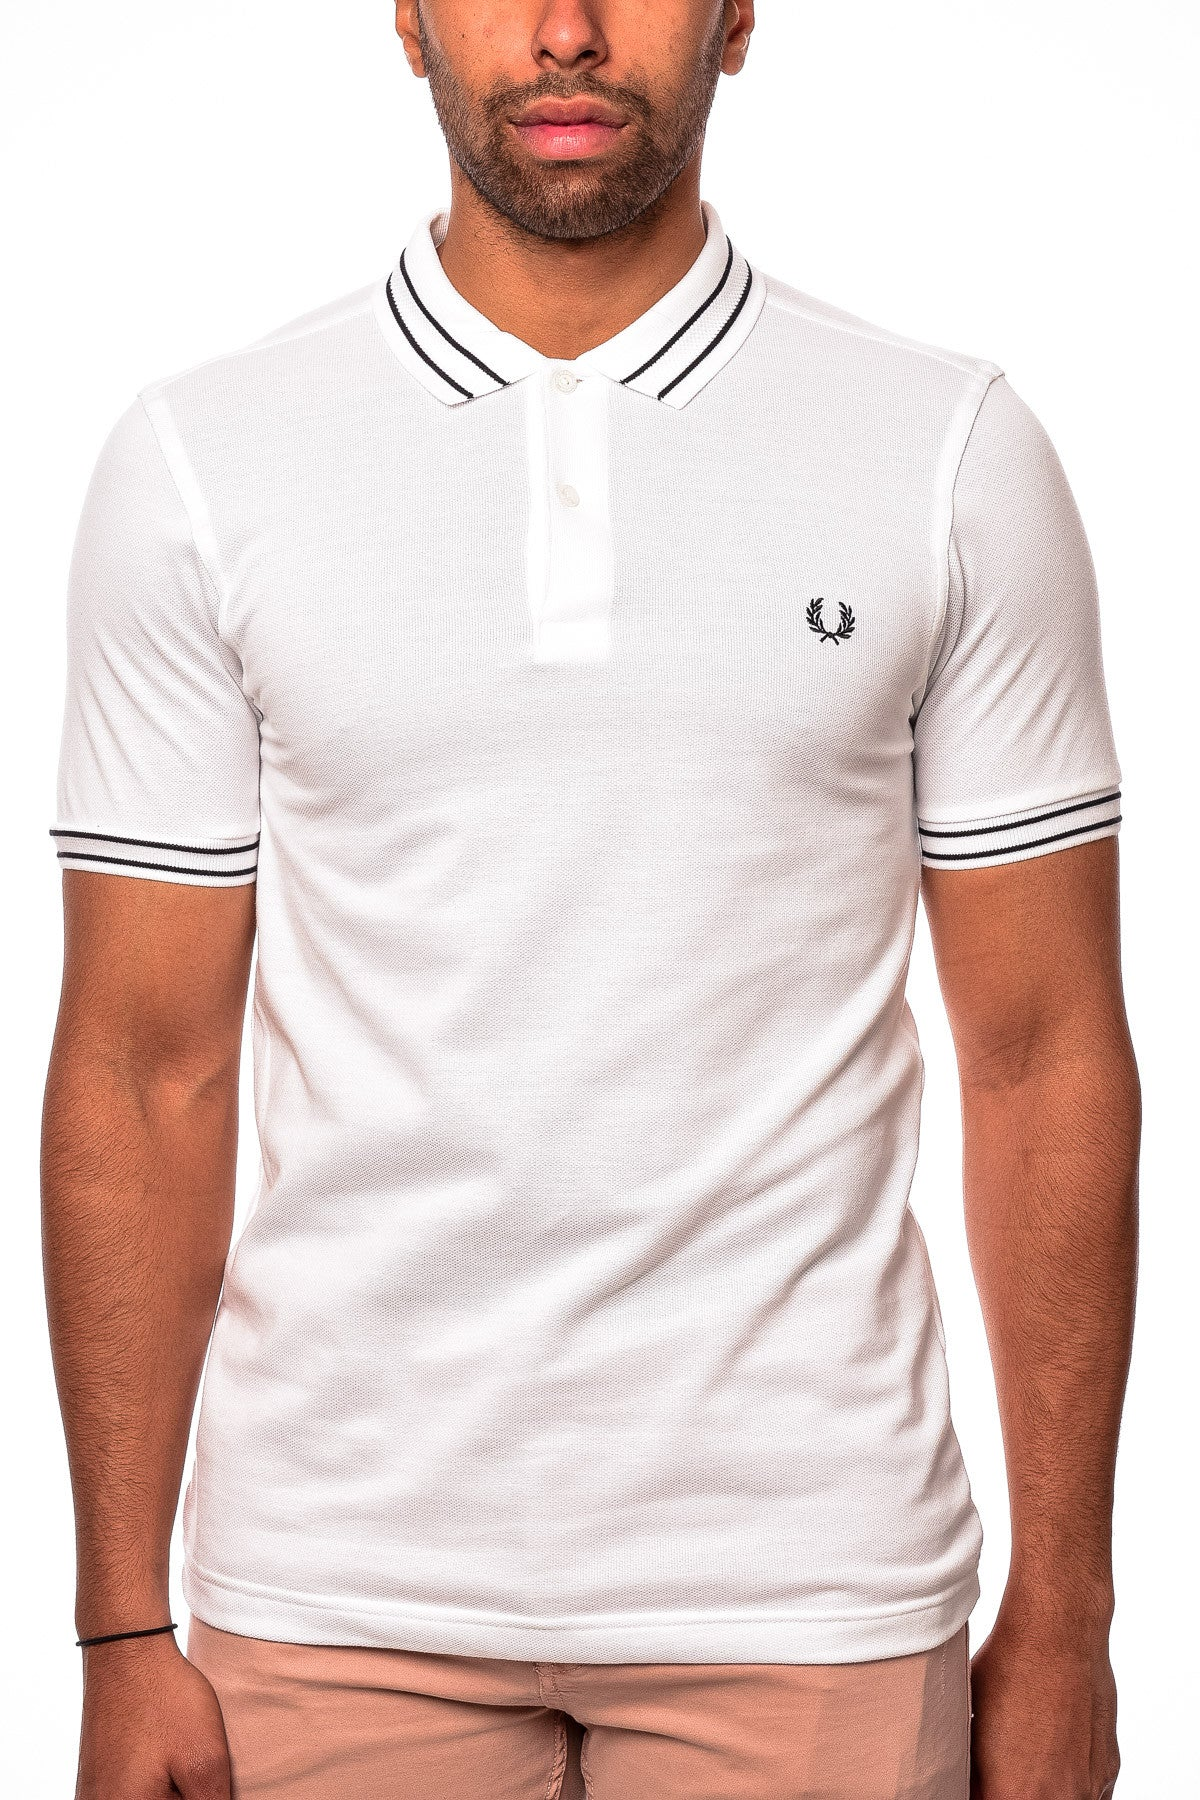 Fred Perry M1500 Tramline Tipped Pique Shirt White Polo